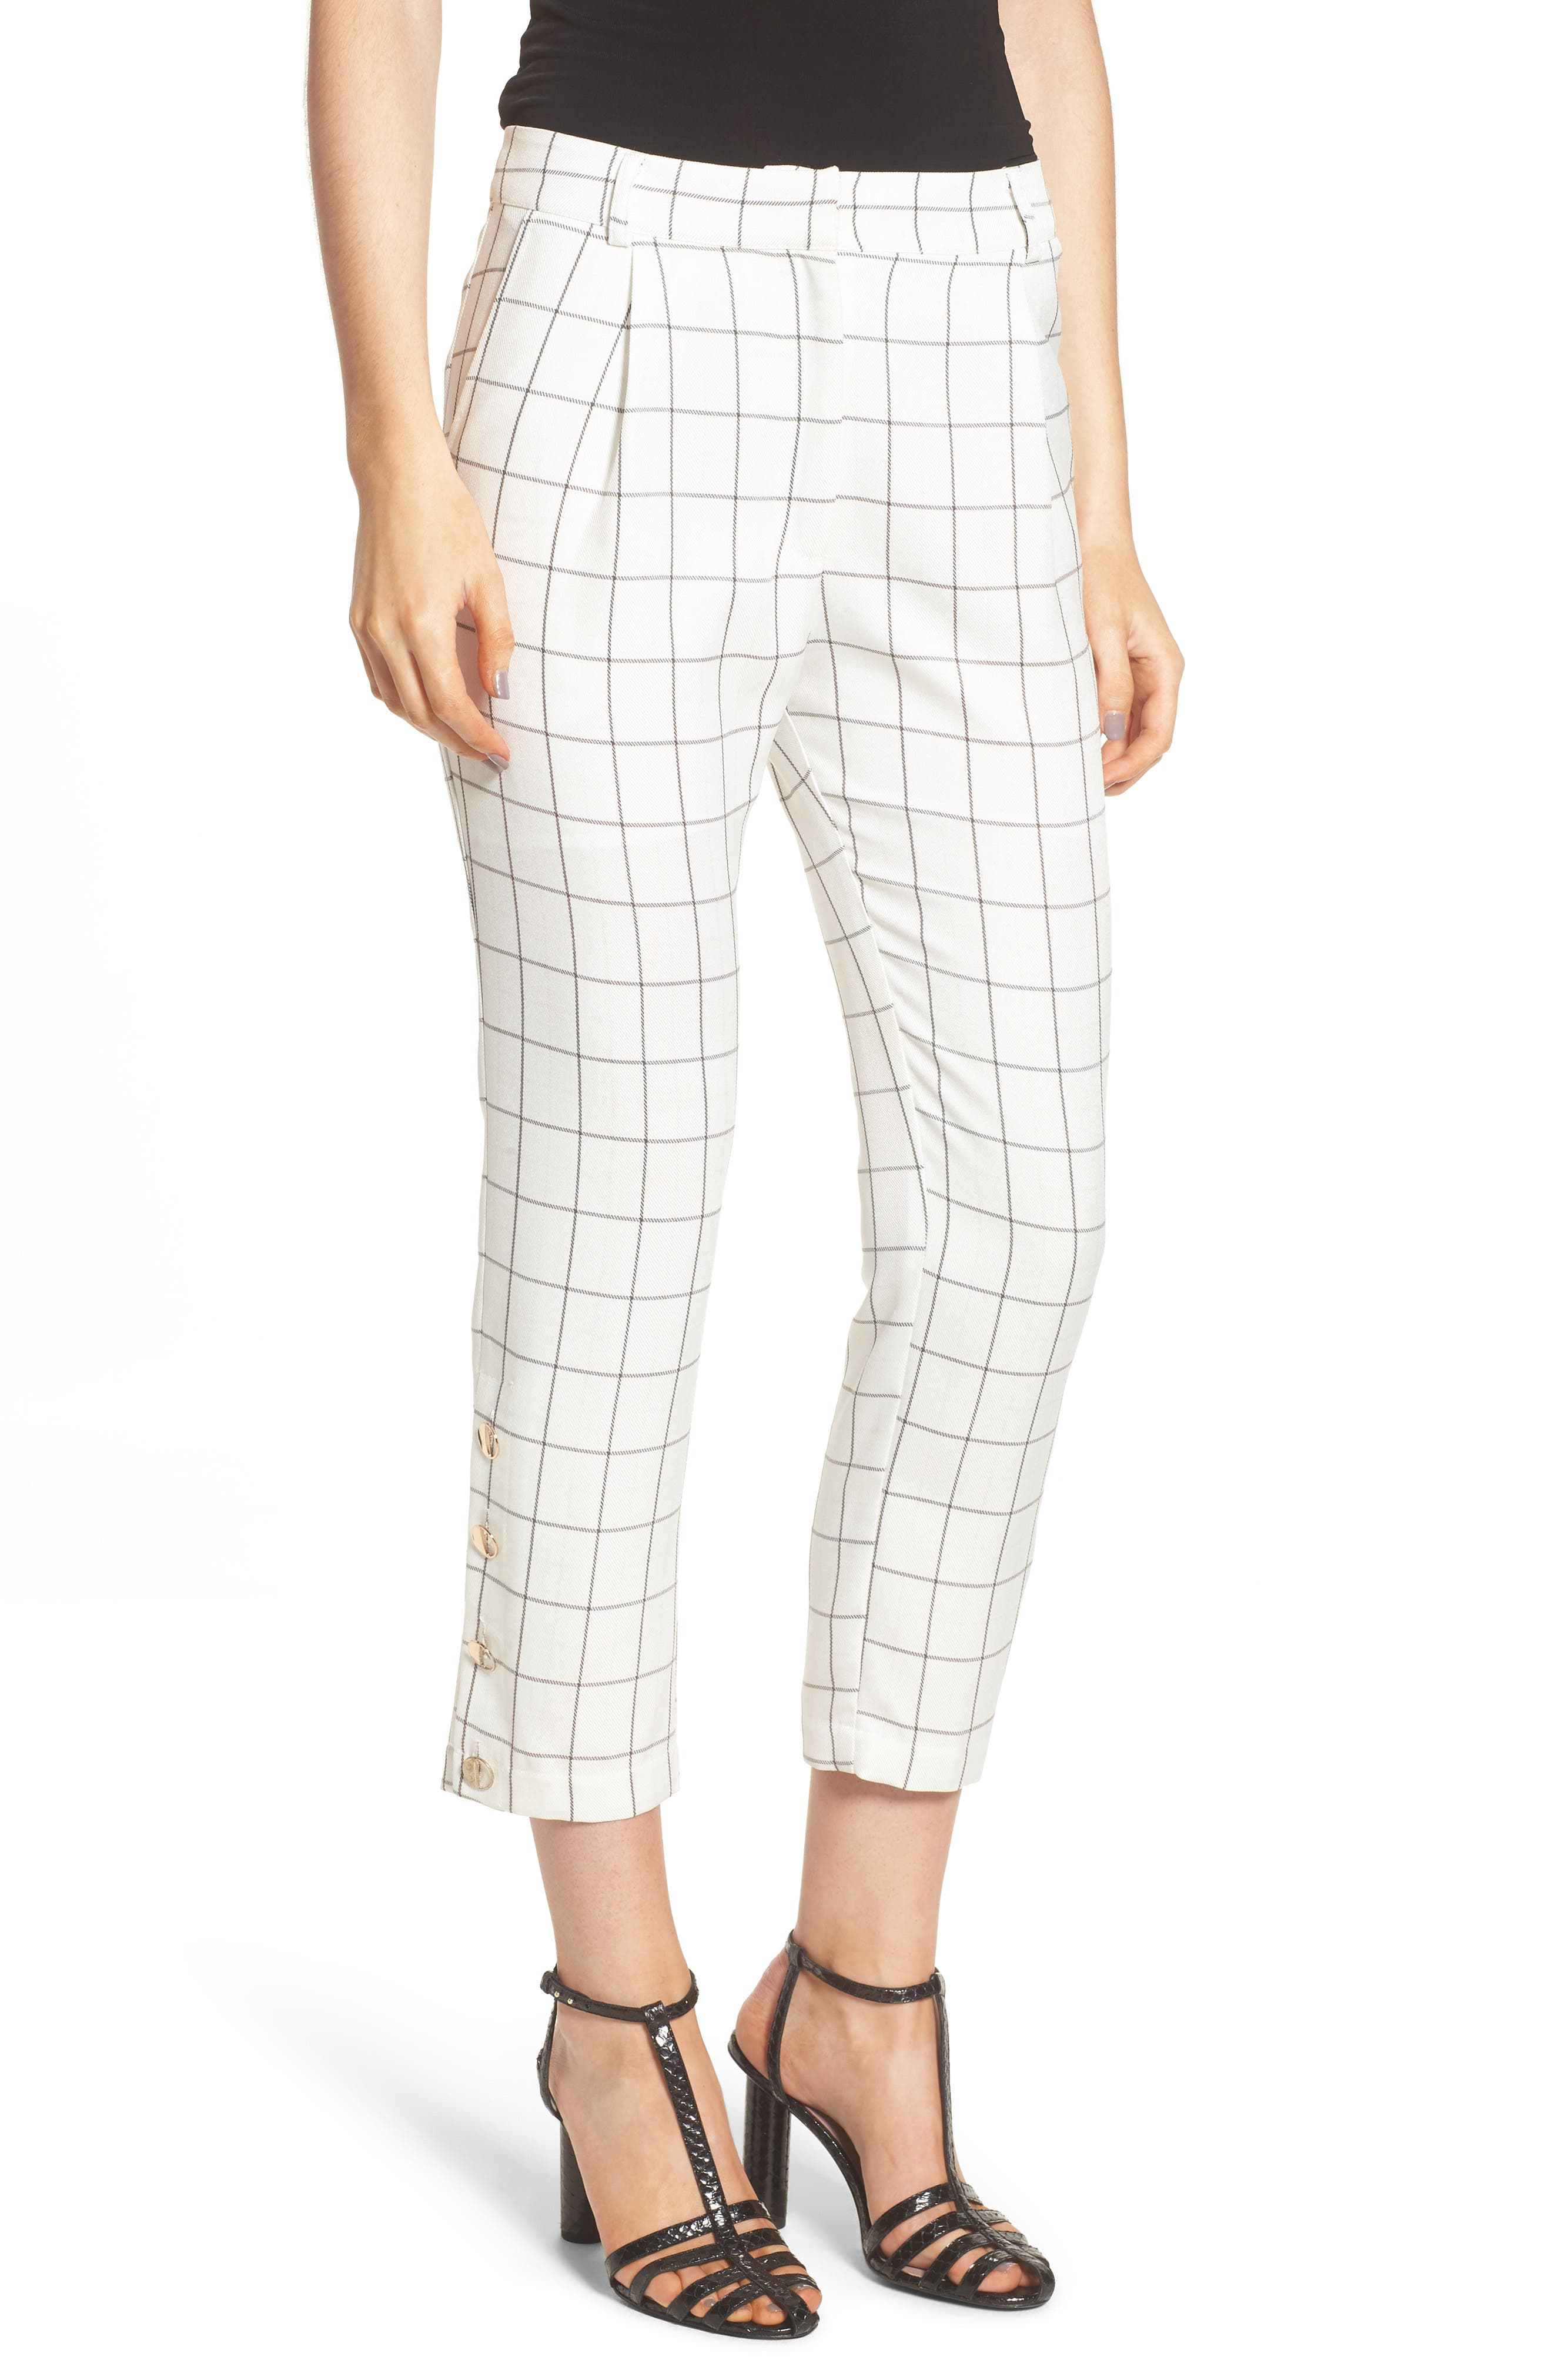 Chriselle x J.O.A. High Waist Ankle Skinny Trousers